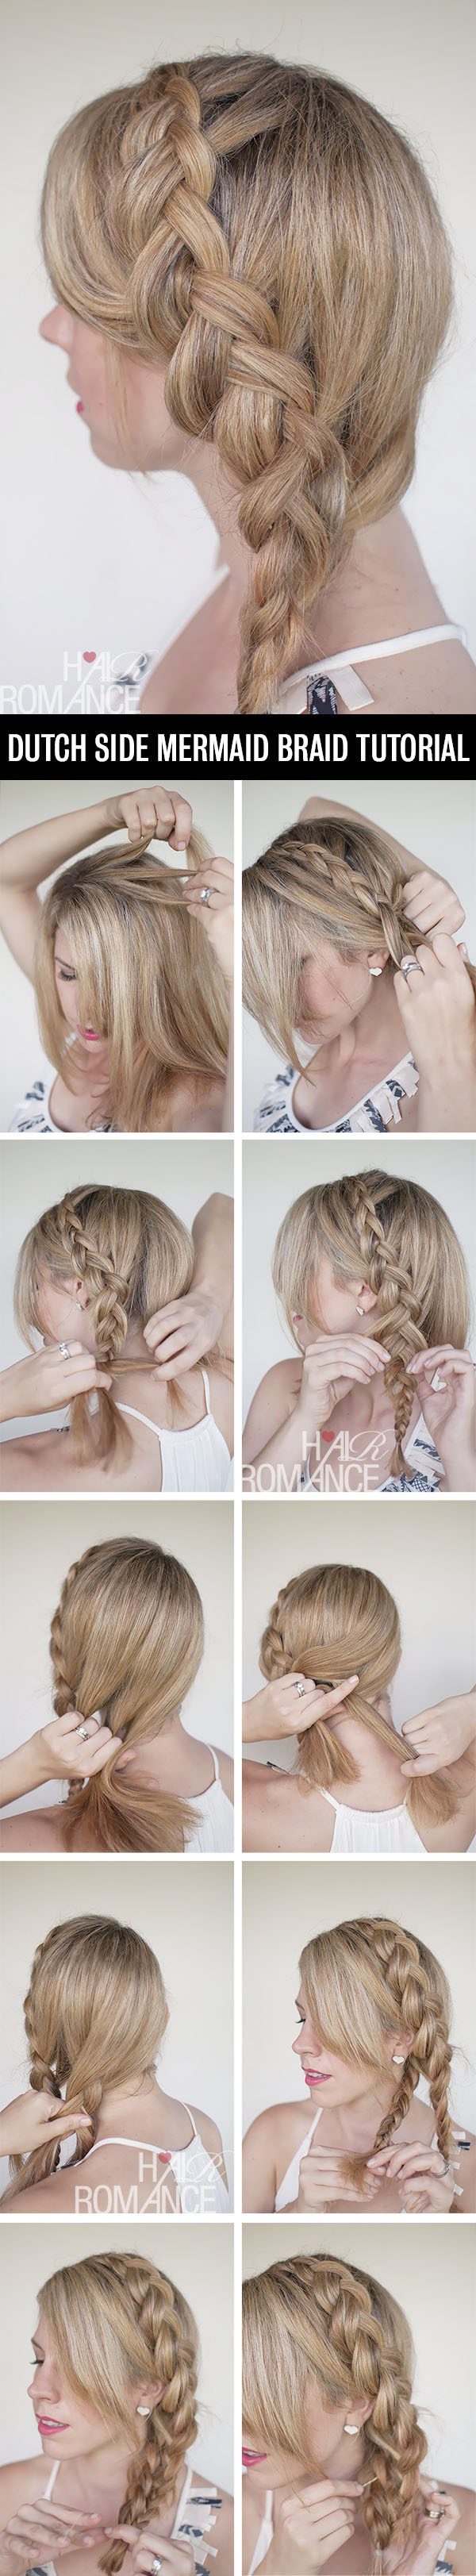 A Dutch Side Mermaid Braid